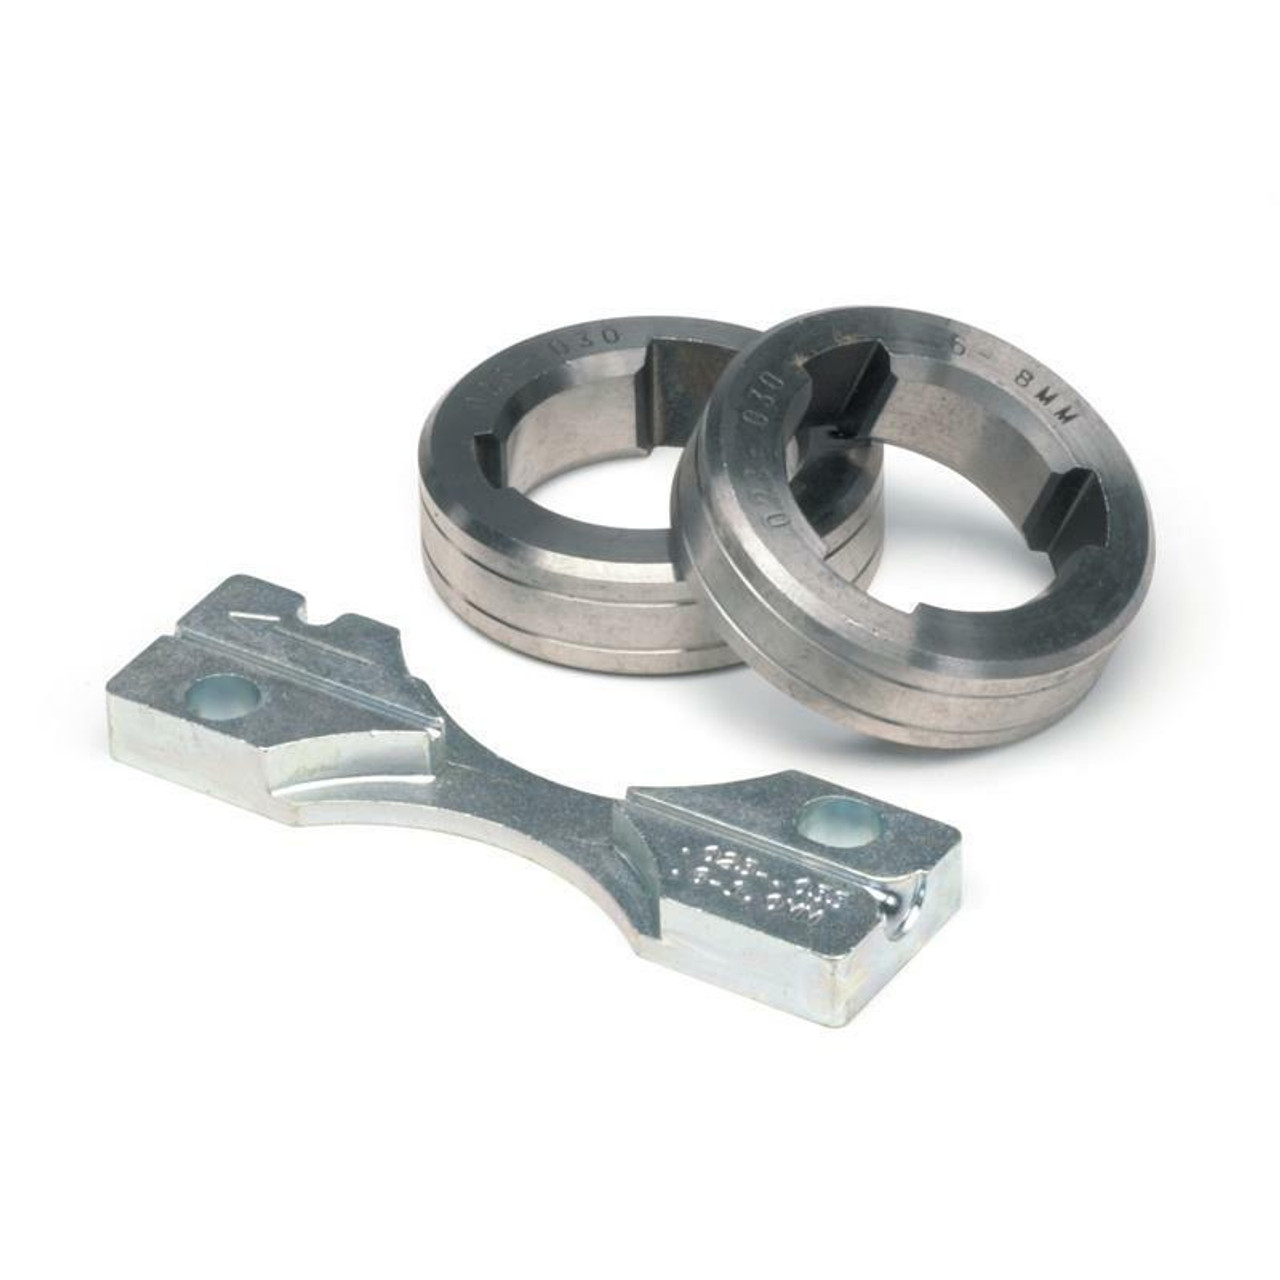 Lincoln KP1881-1 Drive Roll Kit .023-.035 IN Solid Wire 0.6-0.9 MM